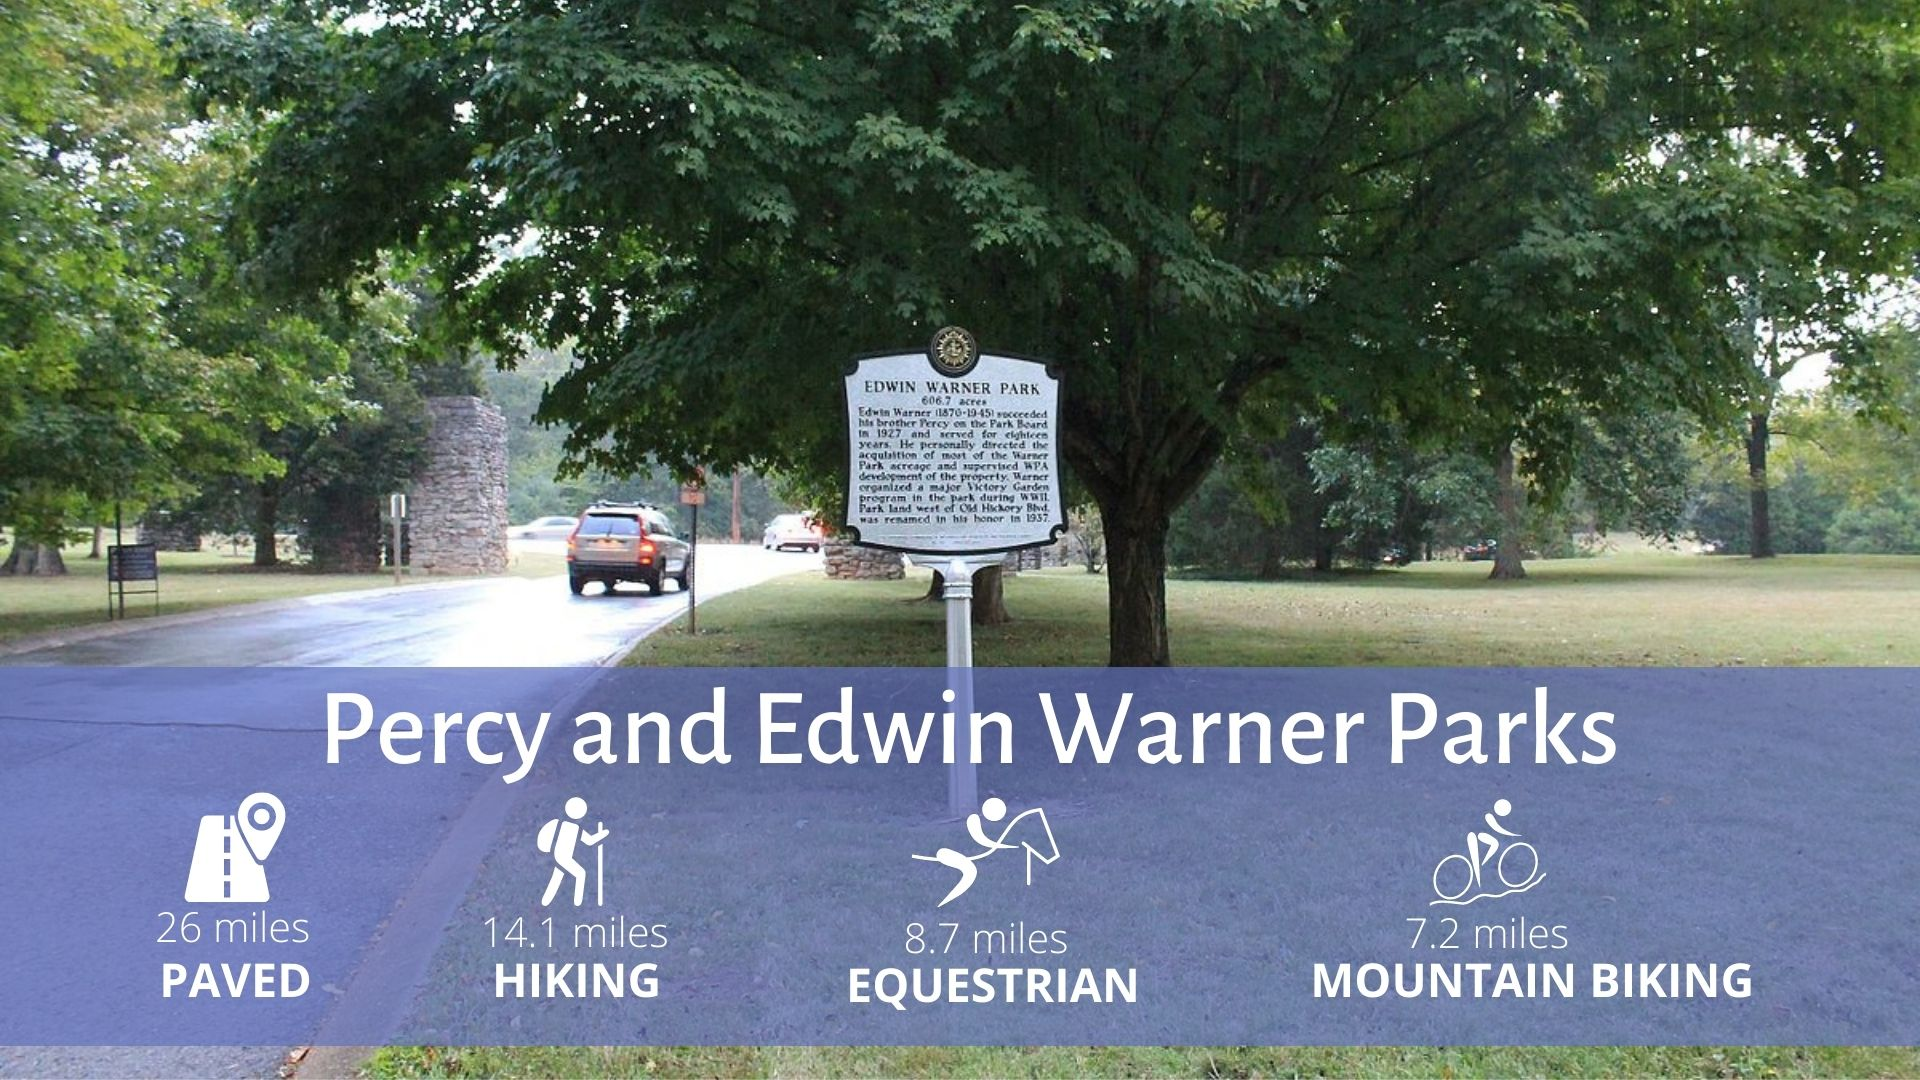 Percy and Edwin Warner Parks